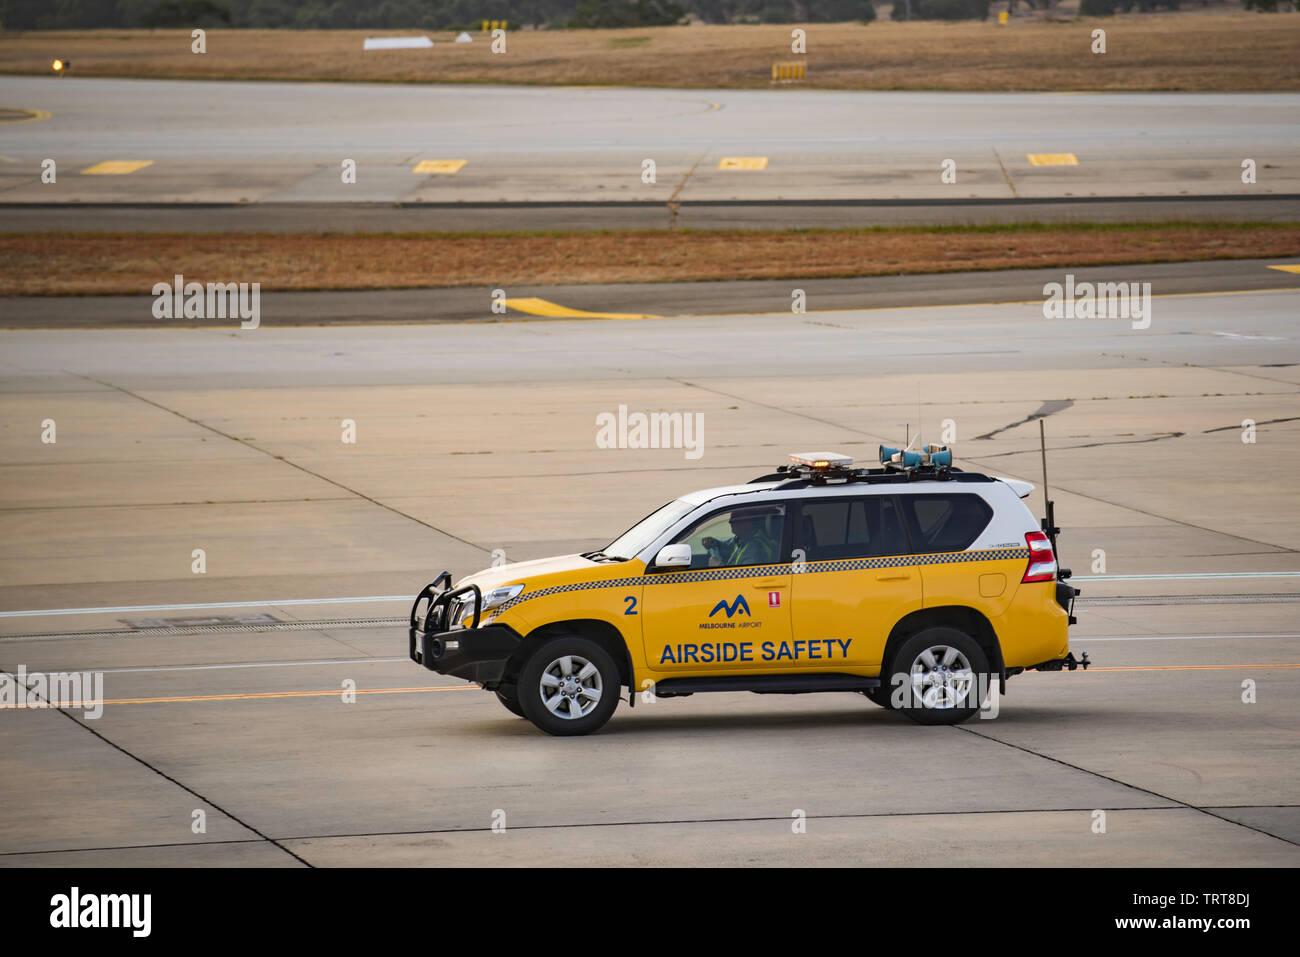 An airside safety vehicle driving near a runway at Melbourne's mainTullamarine airport in Victoria, Australia - Stock Image